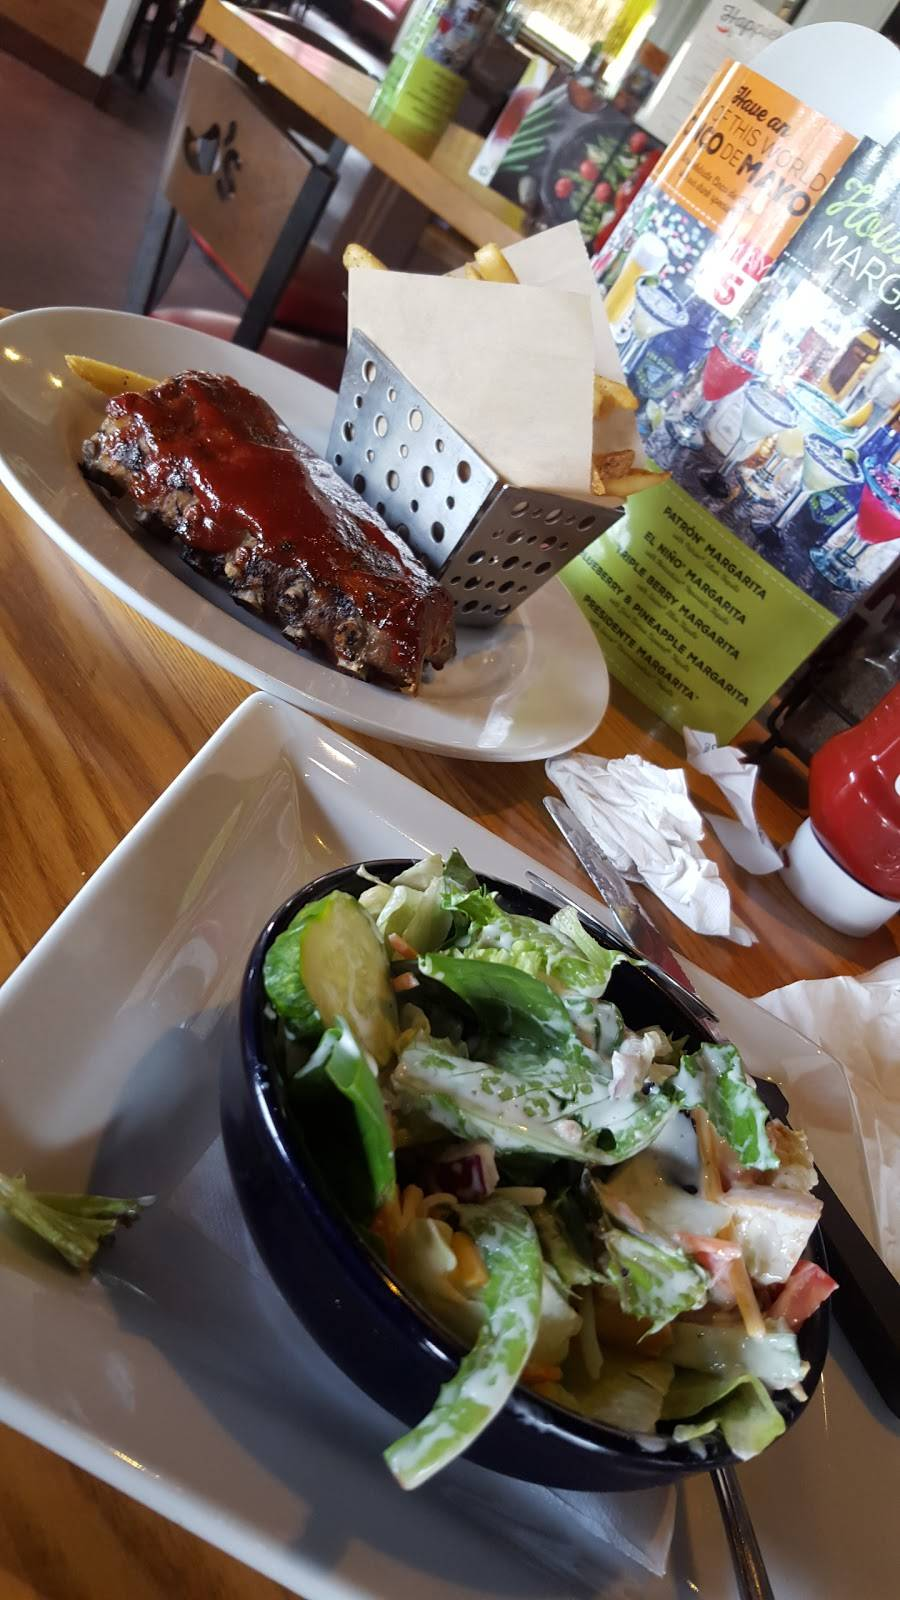 Chilis Grill & Bar   meal takeaway   6603 Farm to Market Rd 1488, Magnolia, TX 77354, USA   2812598470 OR +1 281-259-8470